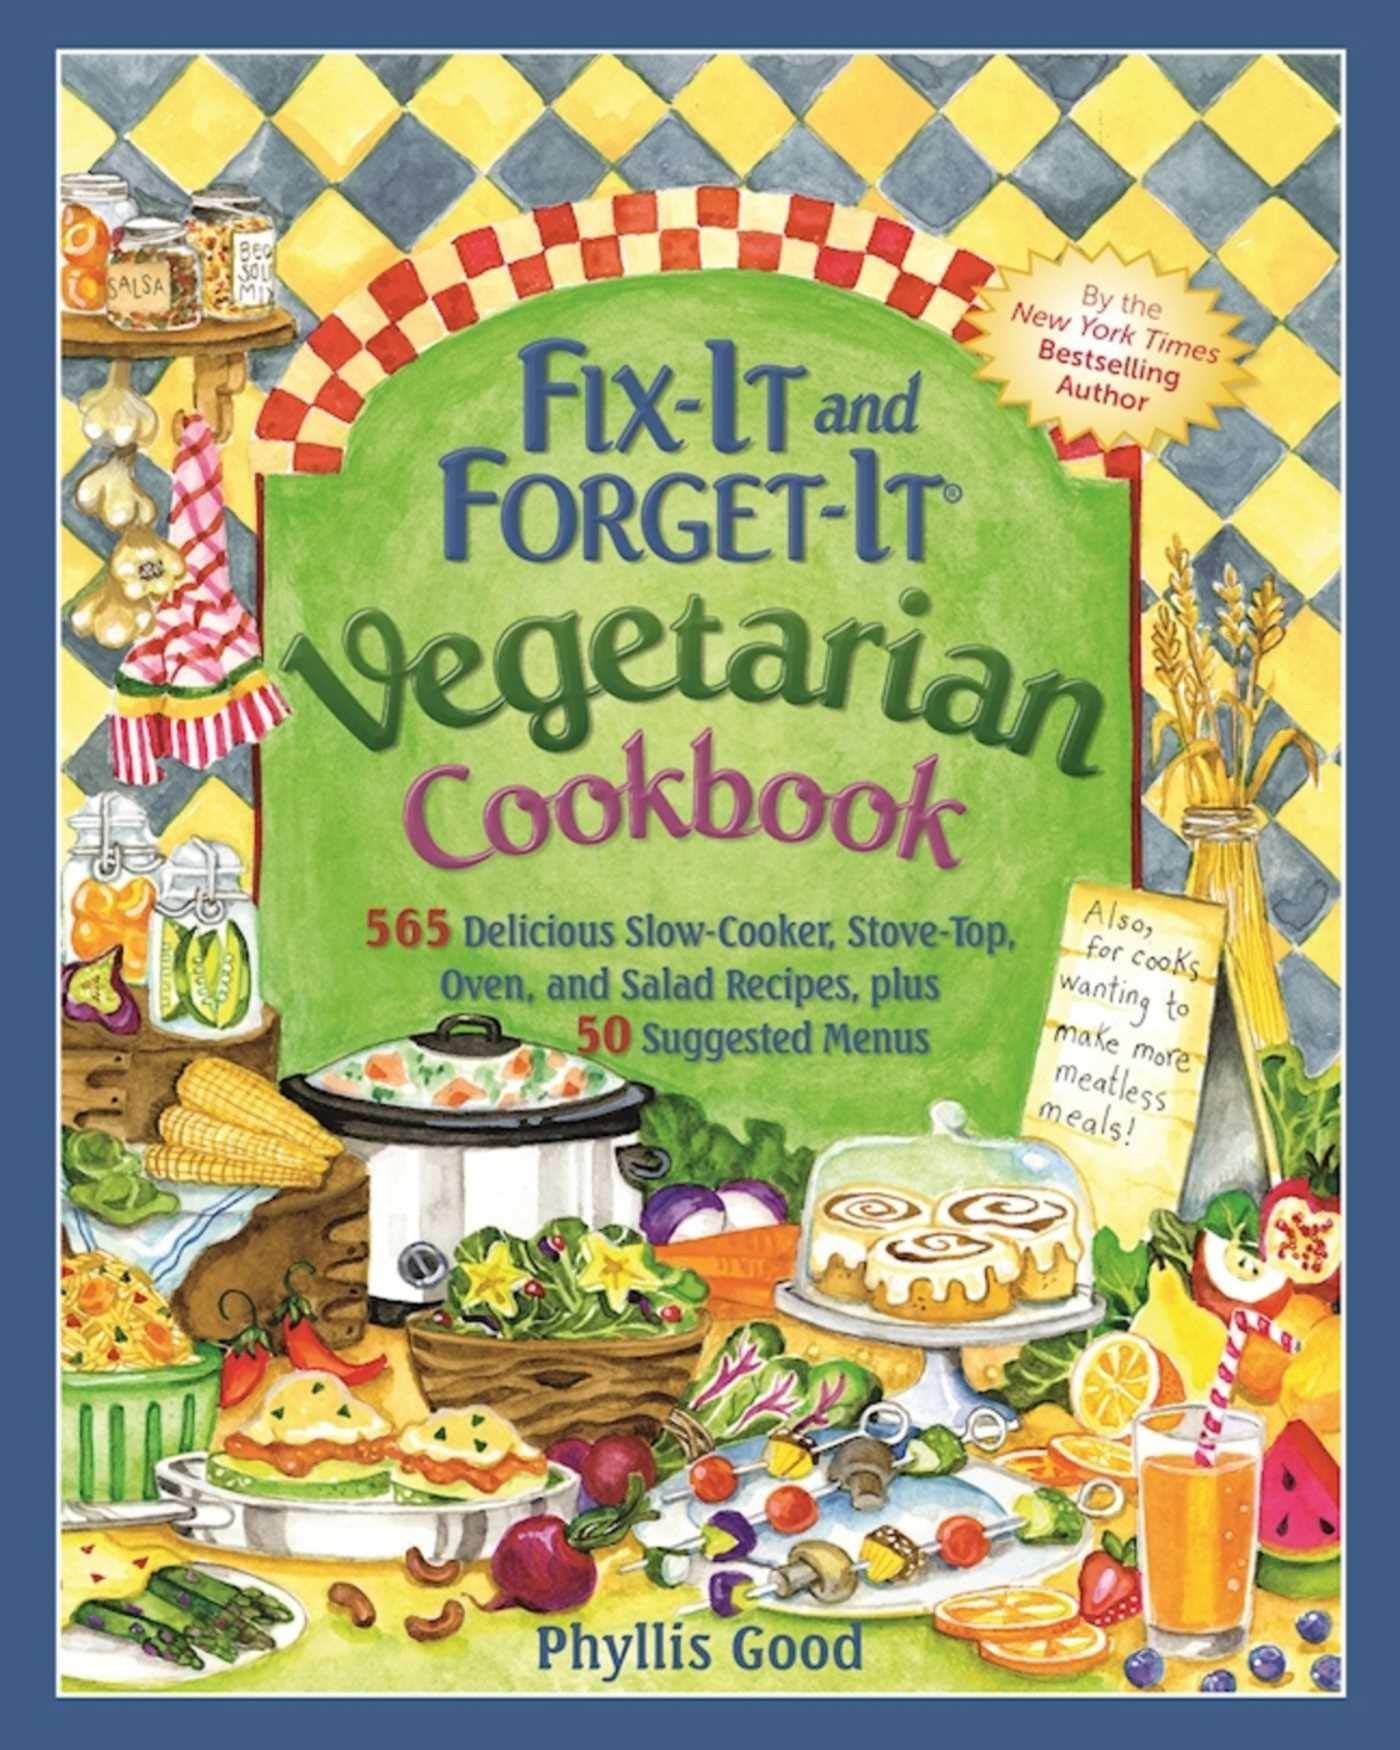 Fix It And Forget It Vegetarian Cookbook 565 Delicious Slow Cooker Stove Top Oven And Salad Recipes Plus 50 Suggested Menus Good Phyllis 9781680991932 Amazon Com Books